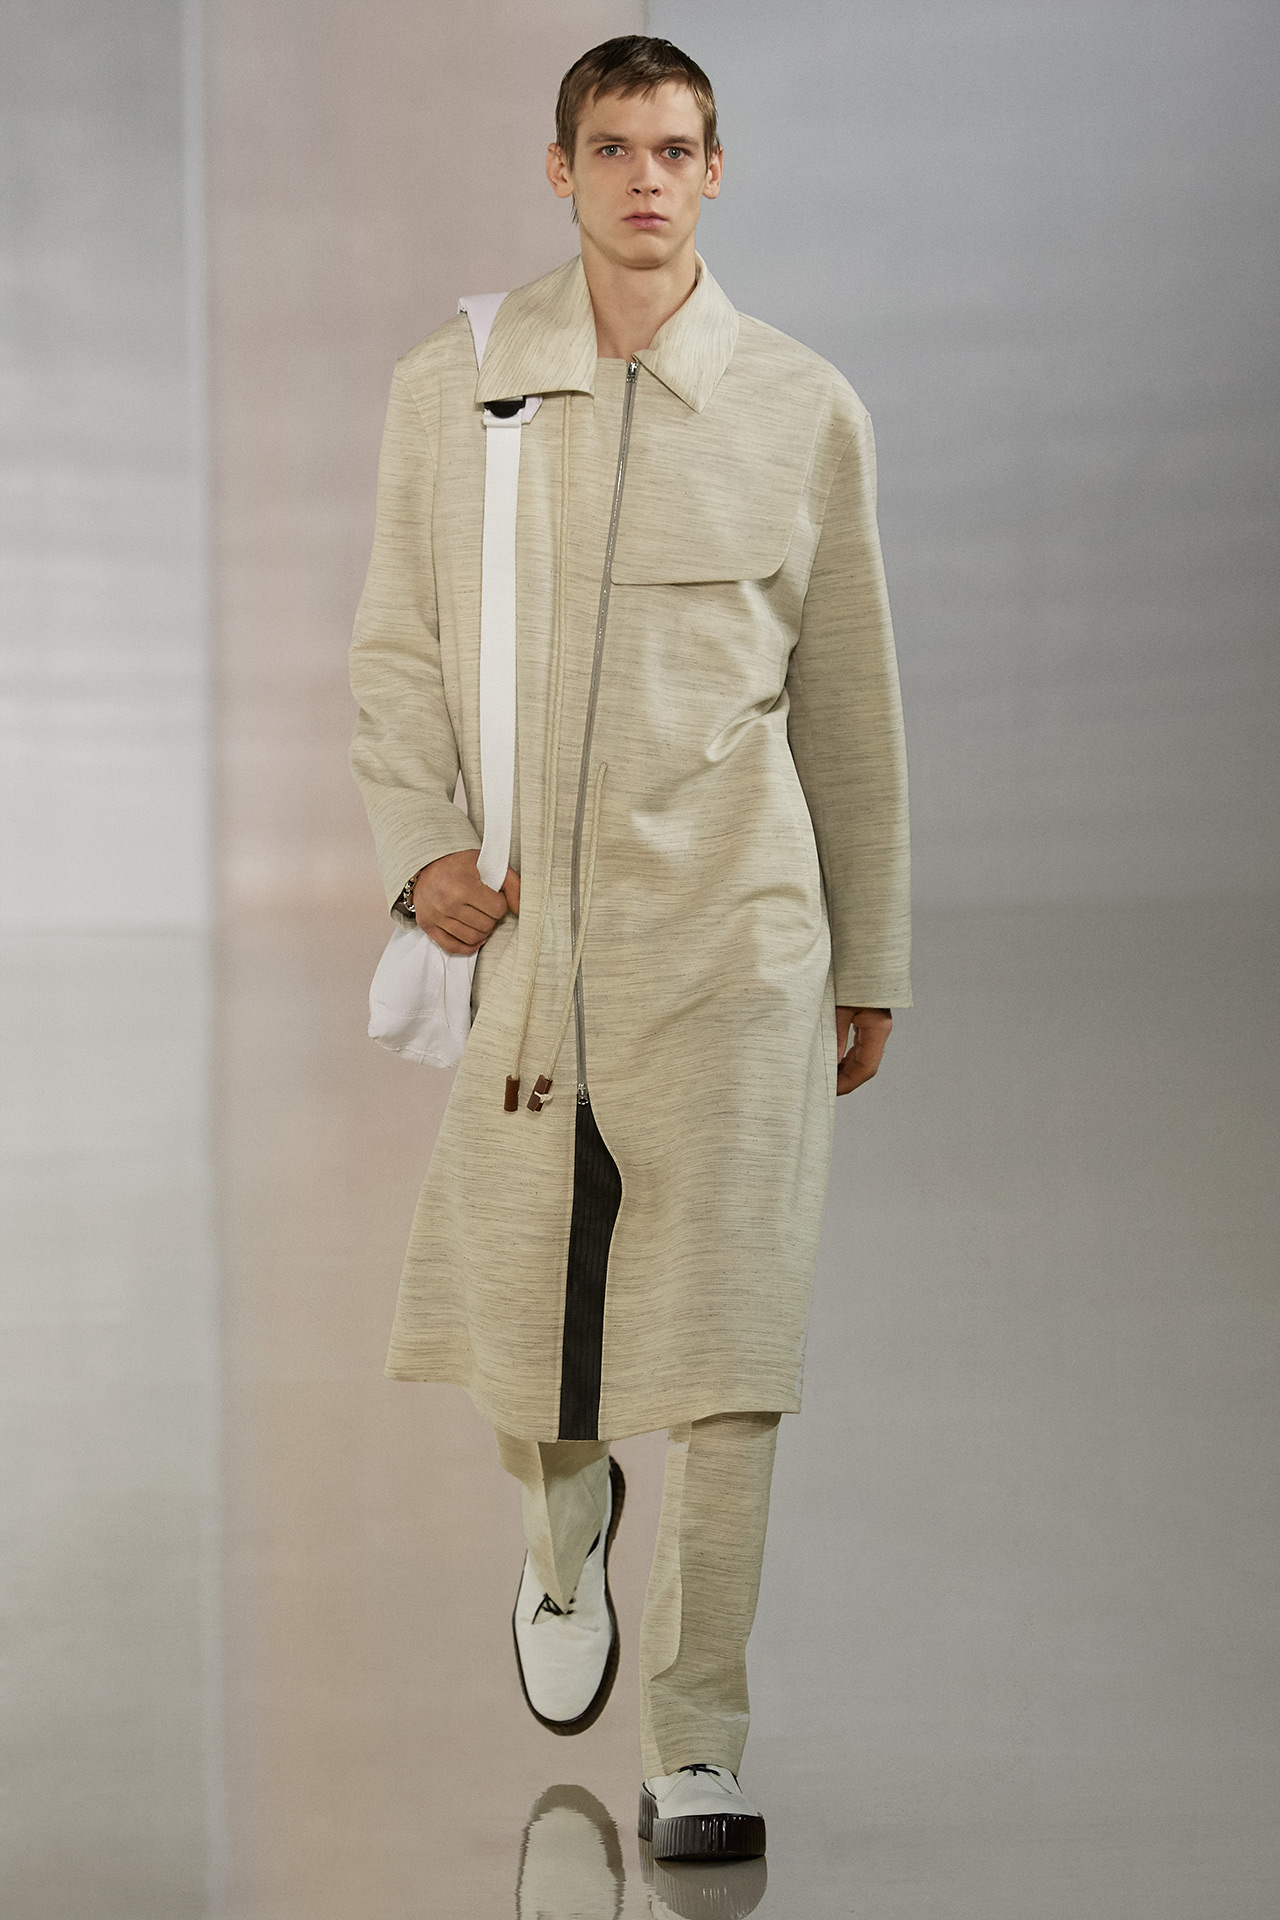 Look Fall/Winter 2020, image 32